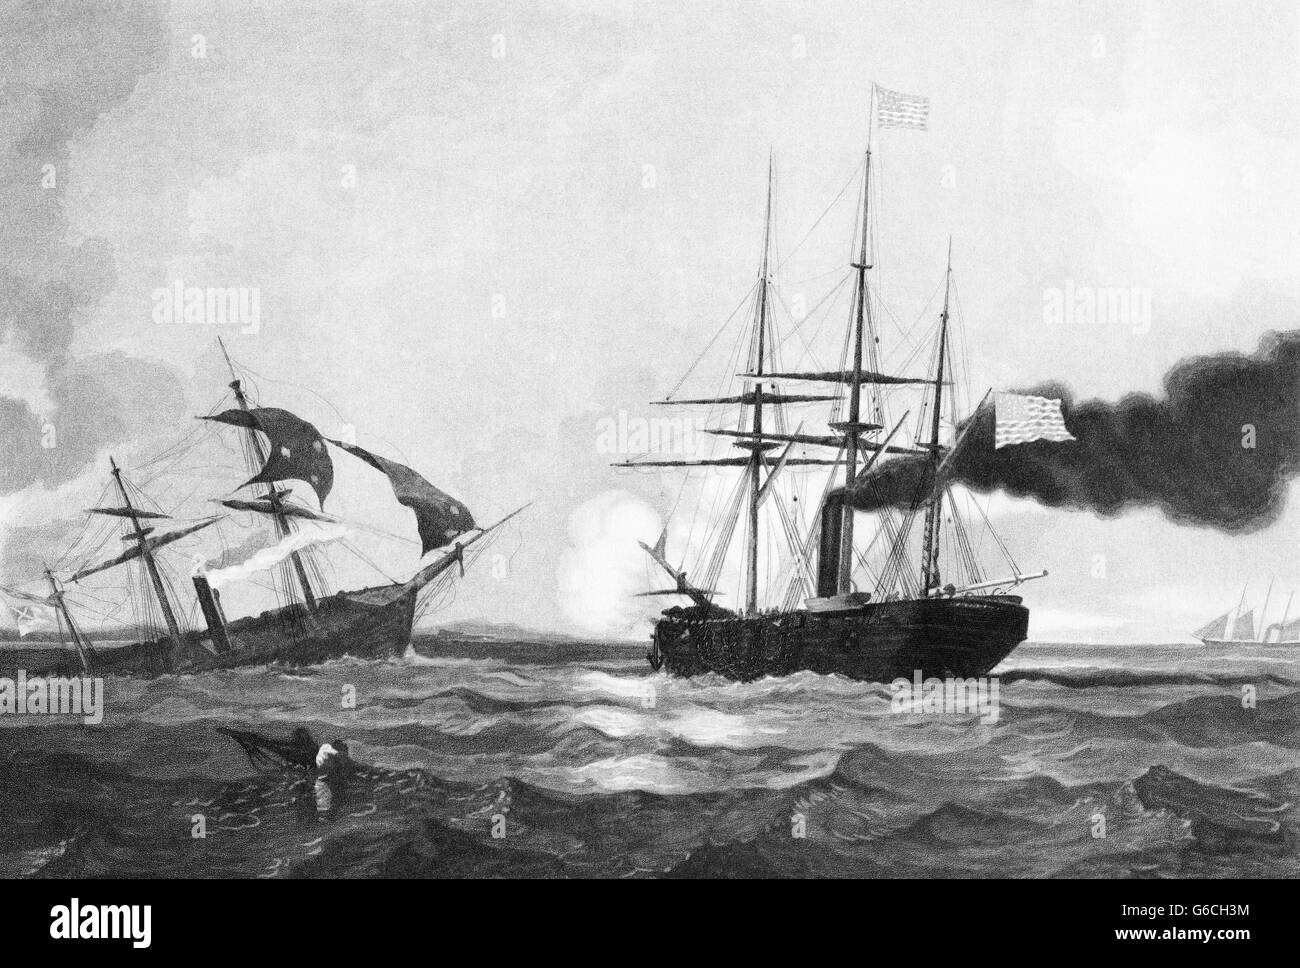 1860s JUNE 19 1864 CSS ALABAMA SINKING AFTER DEFEAT BY UNION SHIP THE USS KEARSARGE  SURVIVOR IN FOREGROUND CHERBOURG - Stock Image